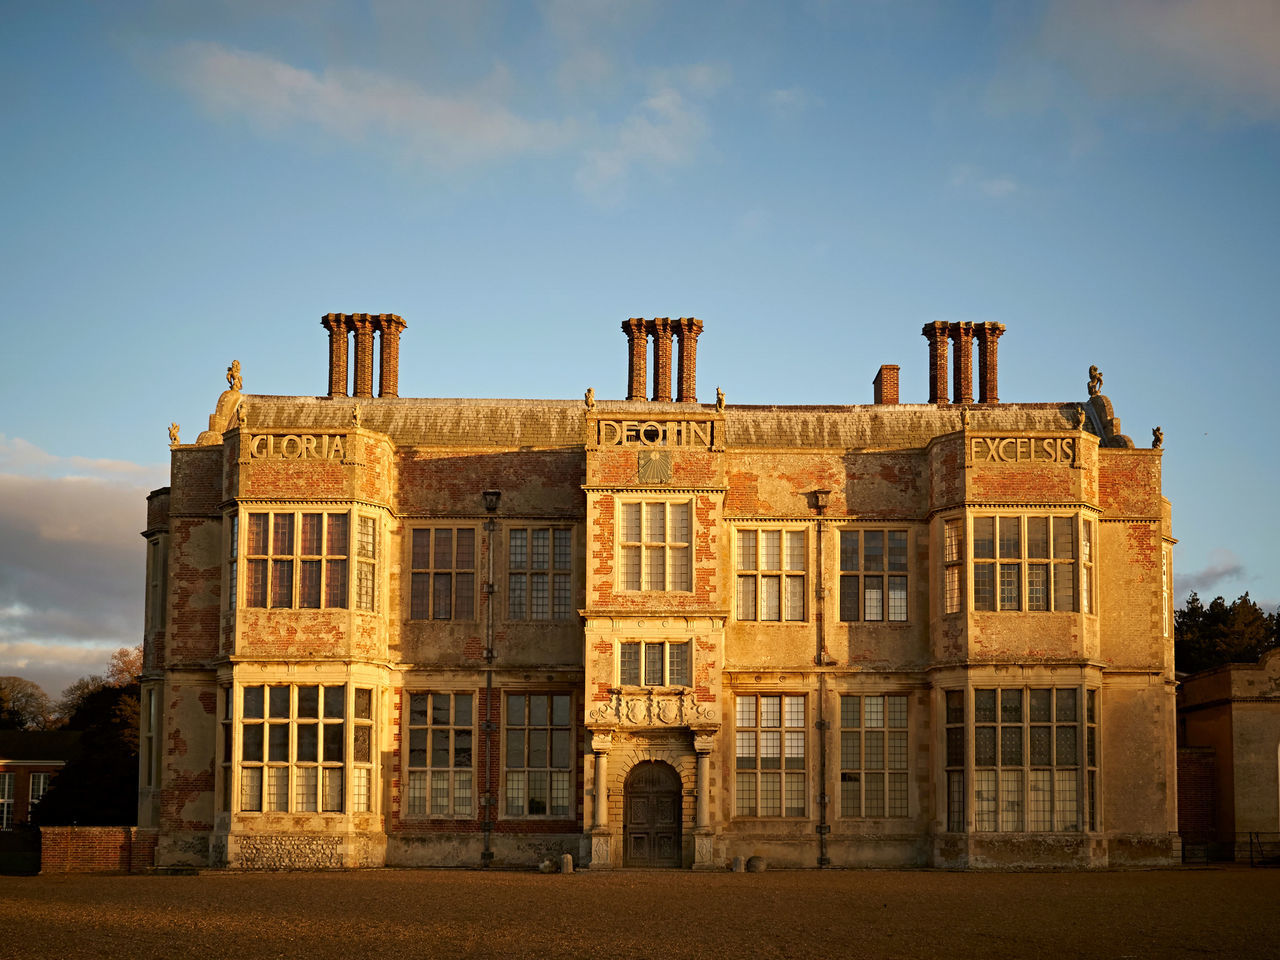 Felbrigg Hall ( Golden Hour) 02. One of my most visited places, is Felbrigg Hall. It is a 17th century country house. Cared for and ran by the National Trust. There is no edit to the colour here, it truly was a golden hour. Olympus Pen F with 17mm f1.8. Edit in Capture One pro. Architecture Architecture_collection Building Exterior Buildings & Sky Built Structure Check This Out Chimney City Cromer EyeEm Best Shots Fine Art Photography Golden Hour Historical Building Historical Sights History Morning Light National Trust No People Olympus Outdoors Sky And Clouds Tadaa Community Travel Destinations Walking Around Window